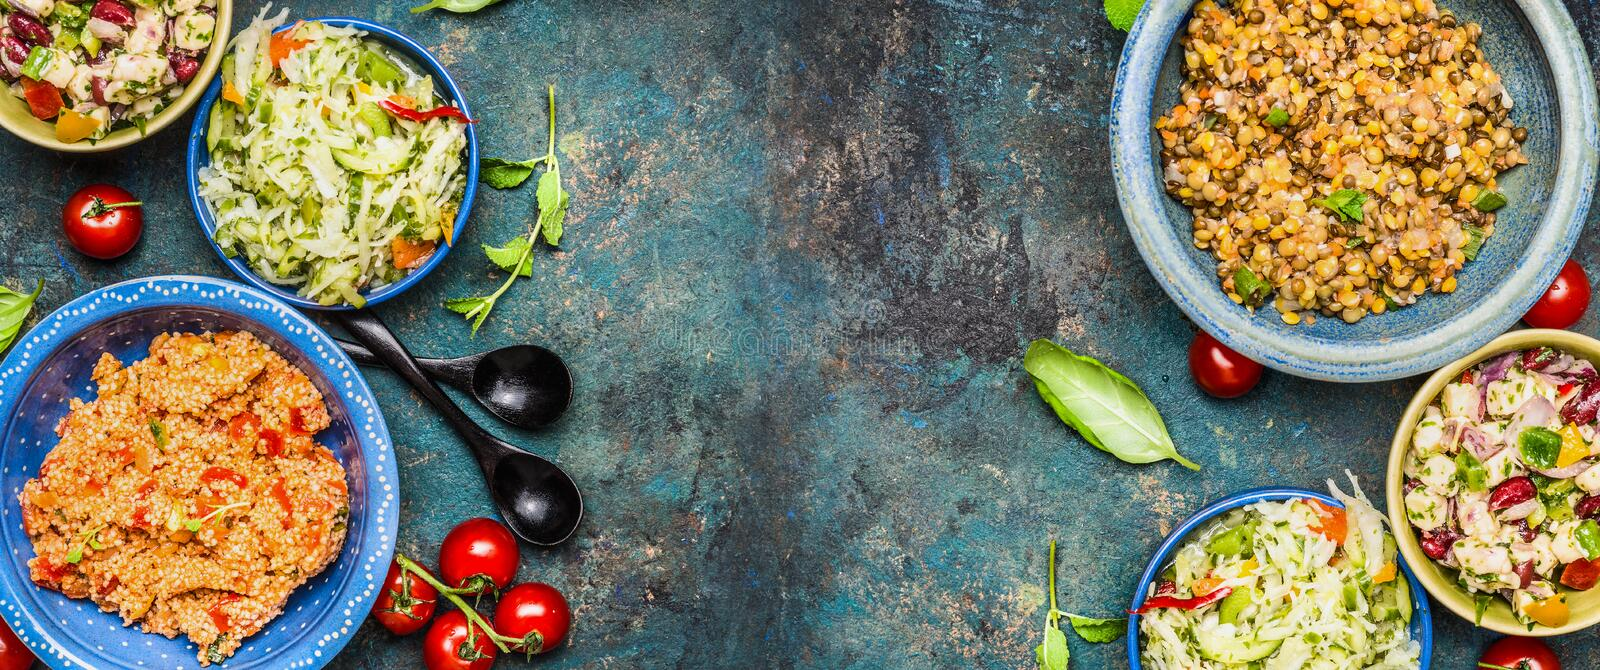 Healthy different salad bowls on dark vintage background. Country salads in rustic bowls. Salad bar, top view, banner. Healthy food or vegetarian eating stock image